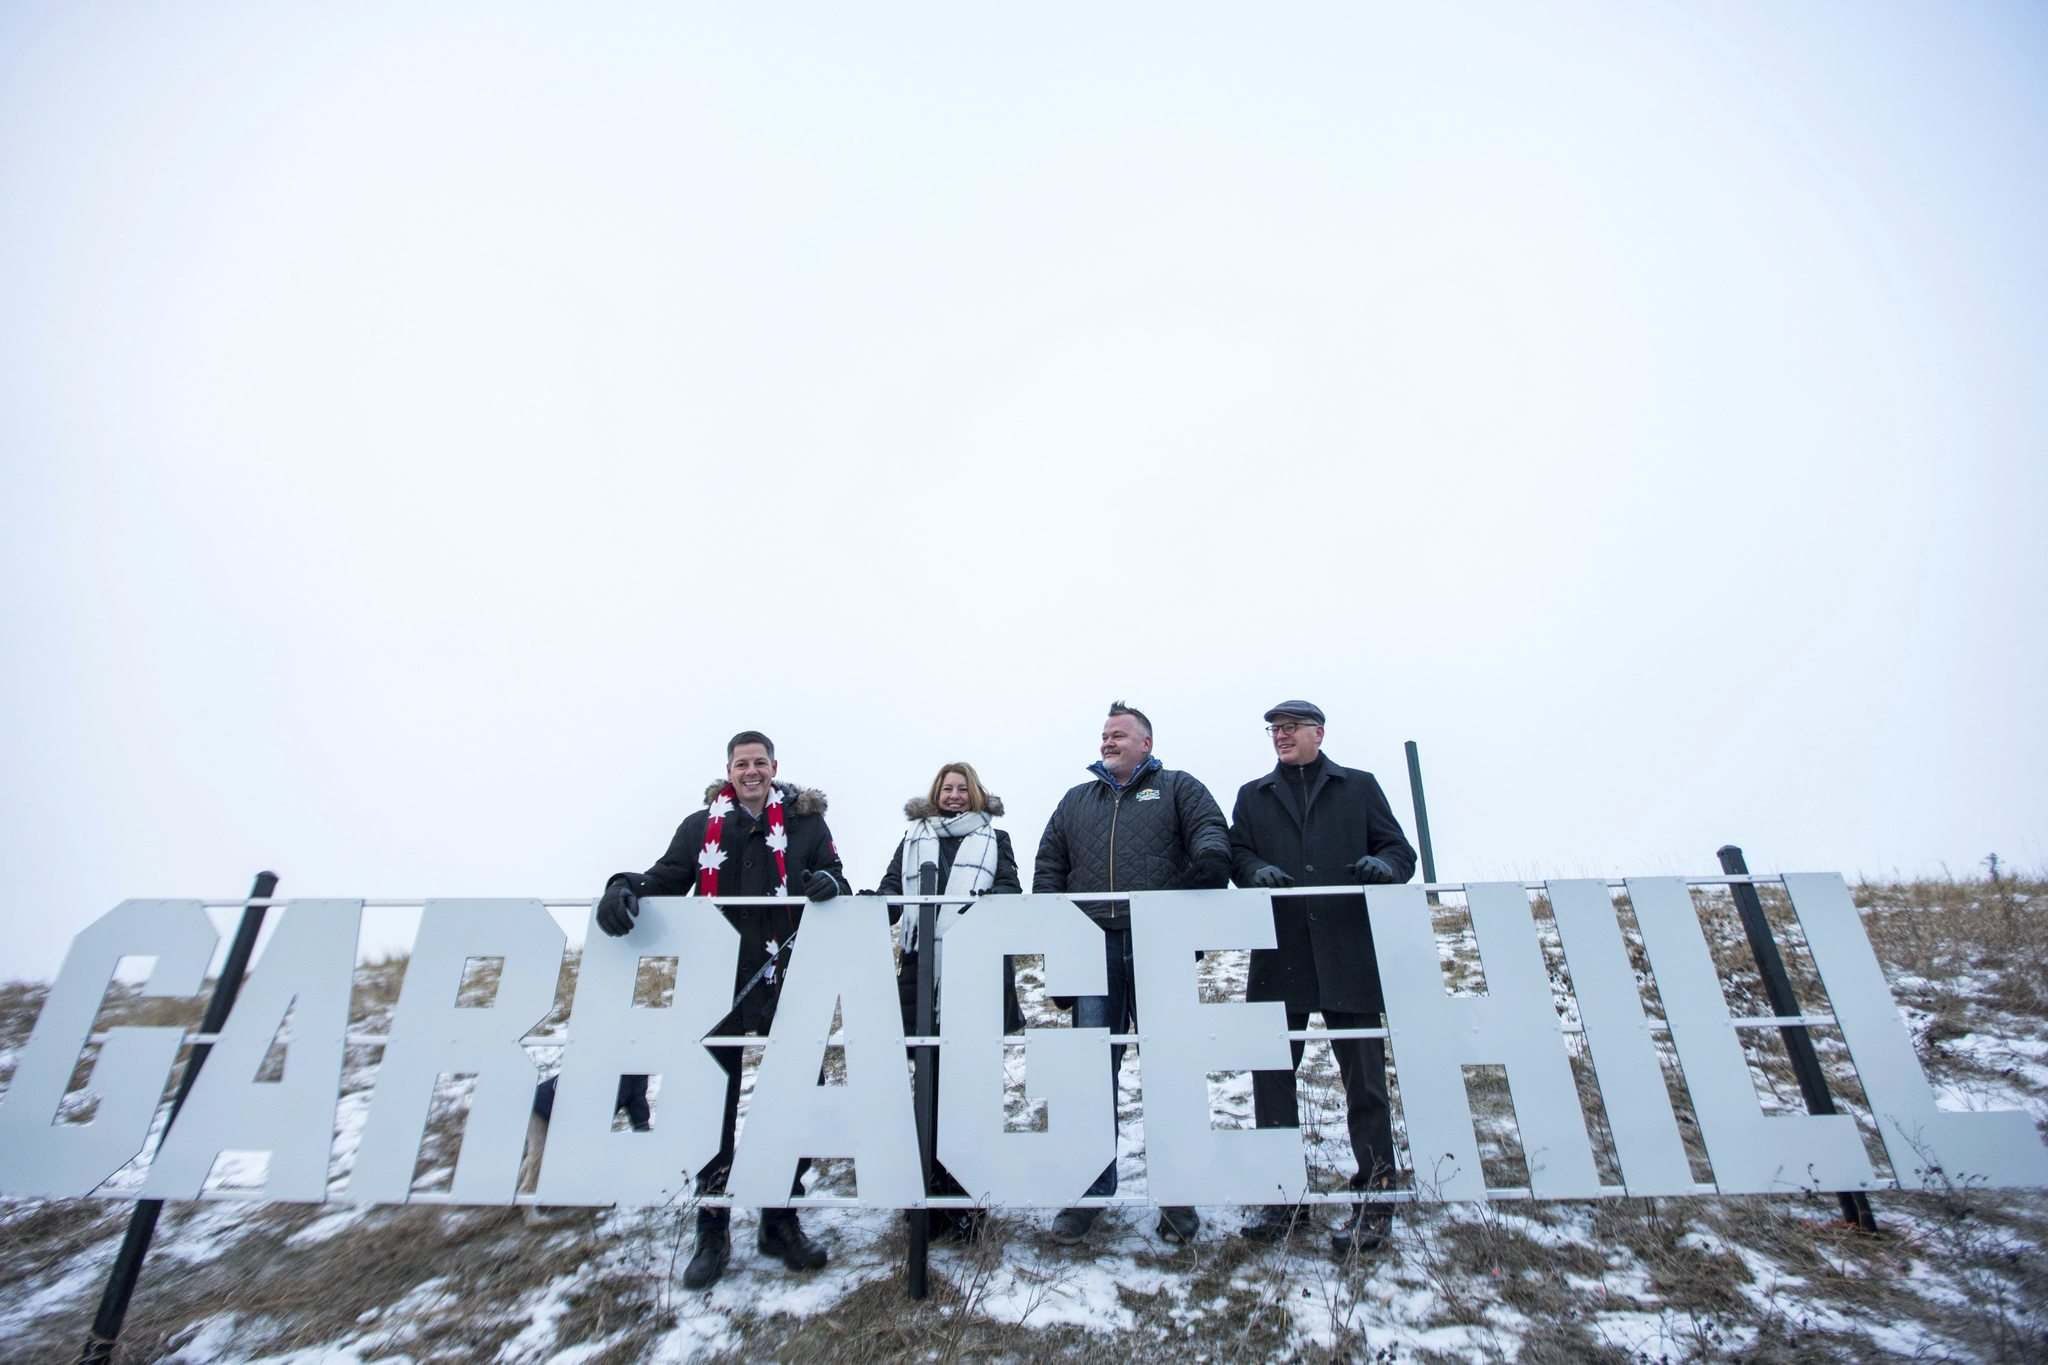 MIKAELA MACKENZIE / WINNIPEG FREE PRESSMayor Brian Bowman (from left), councillor Cindy Gilroy, President of SRS Signs and Service Inc. Shane Storie, and councillor Scott Gillingham pose with the new Garbage Hill sign.</p>